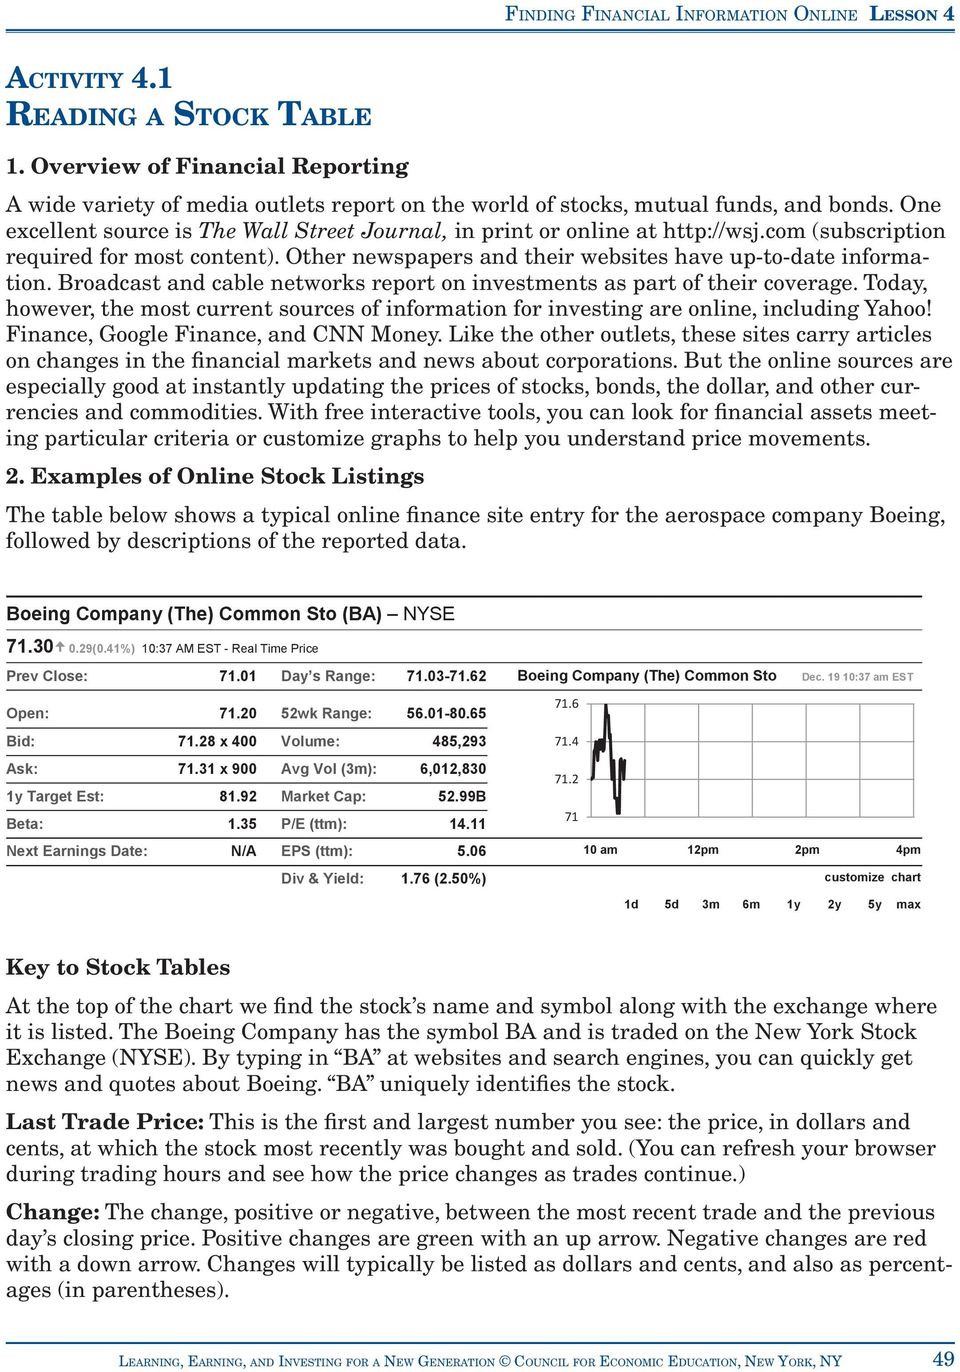 ACTIVITY 4 1 READING A STOCK TABLE PDF Free Download